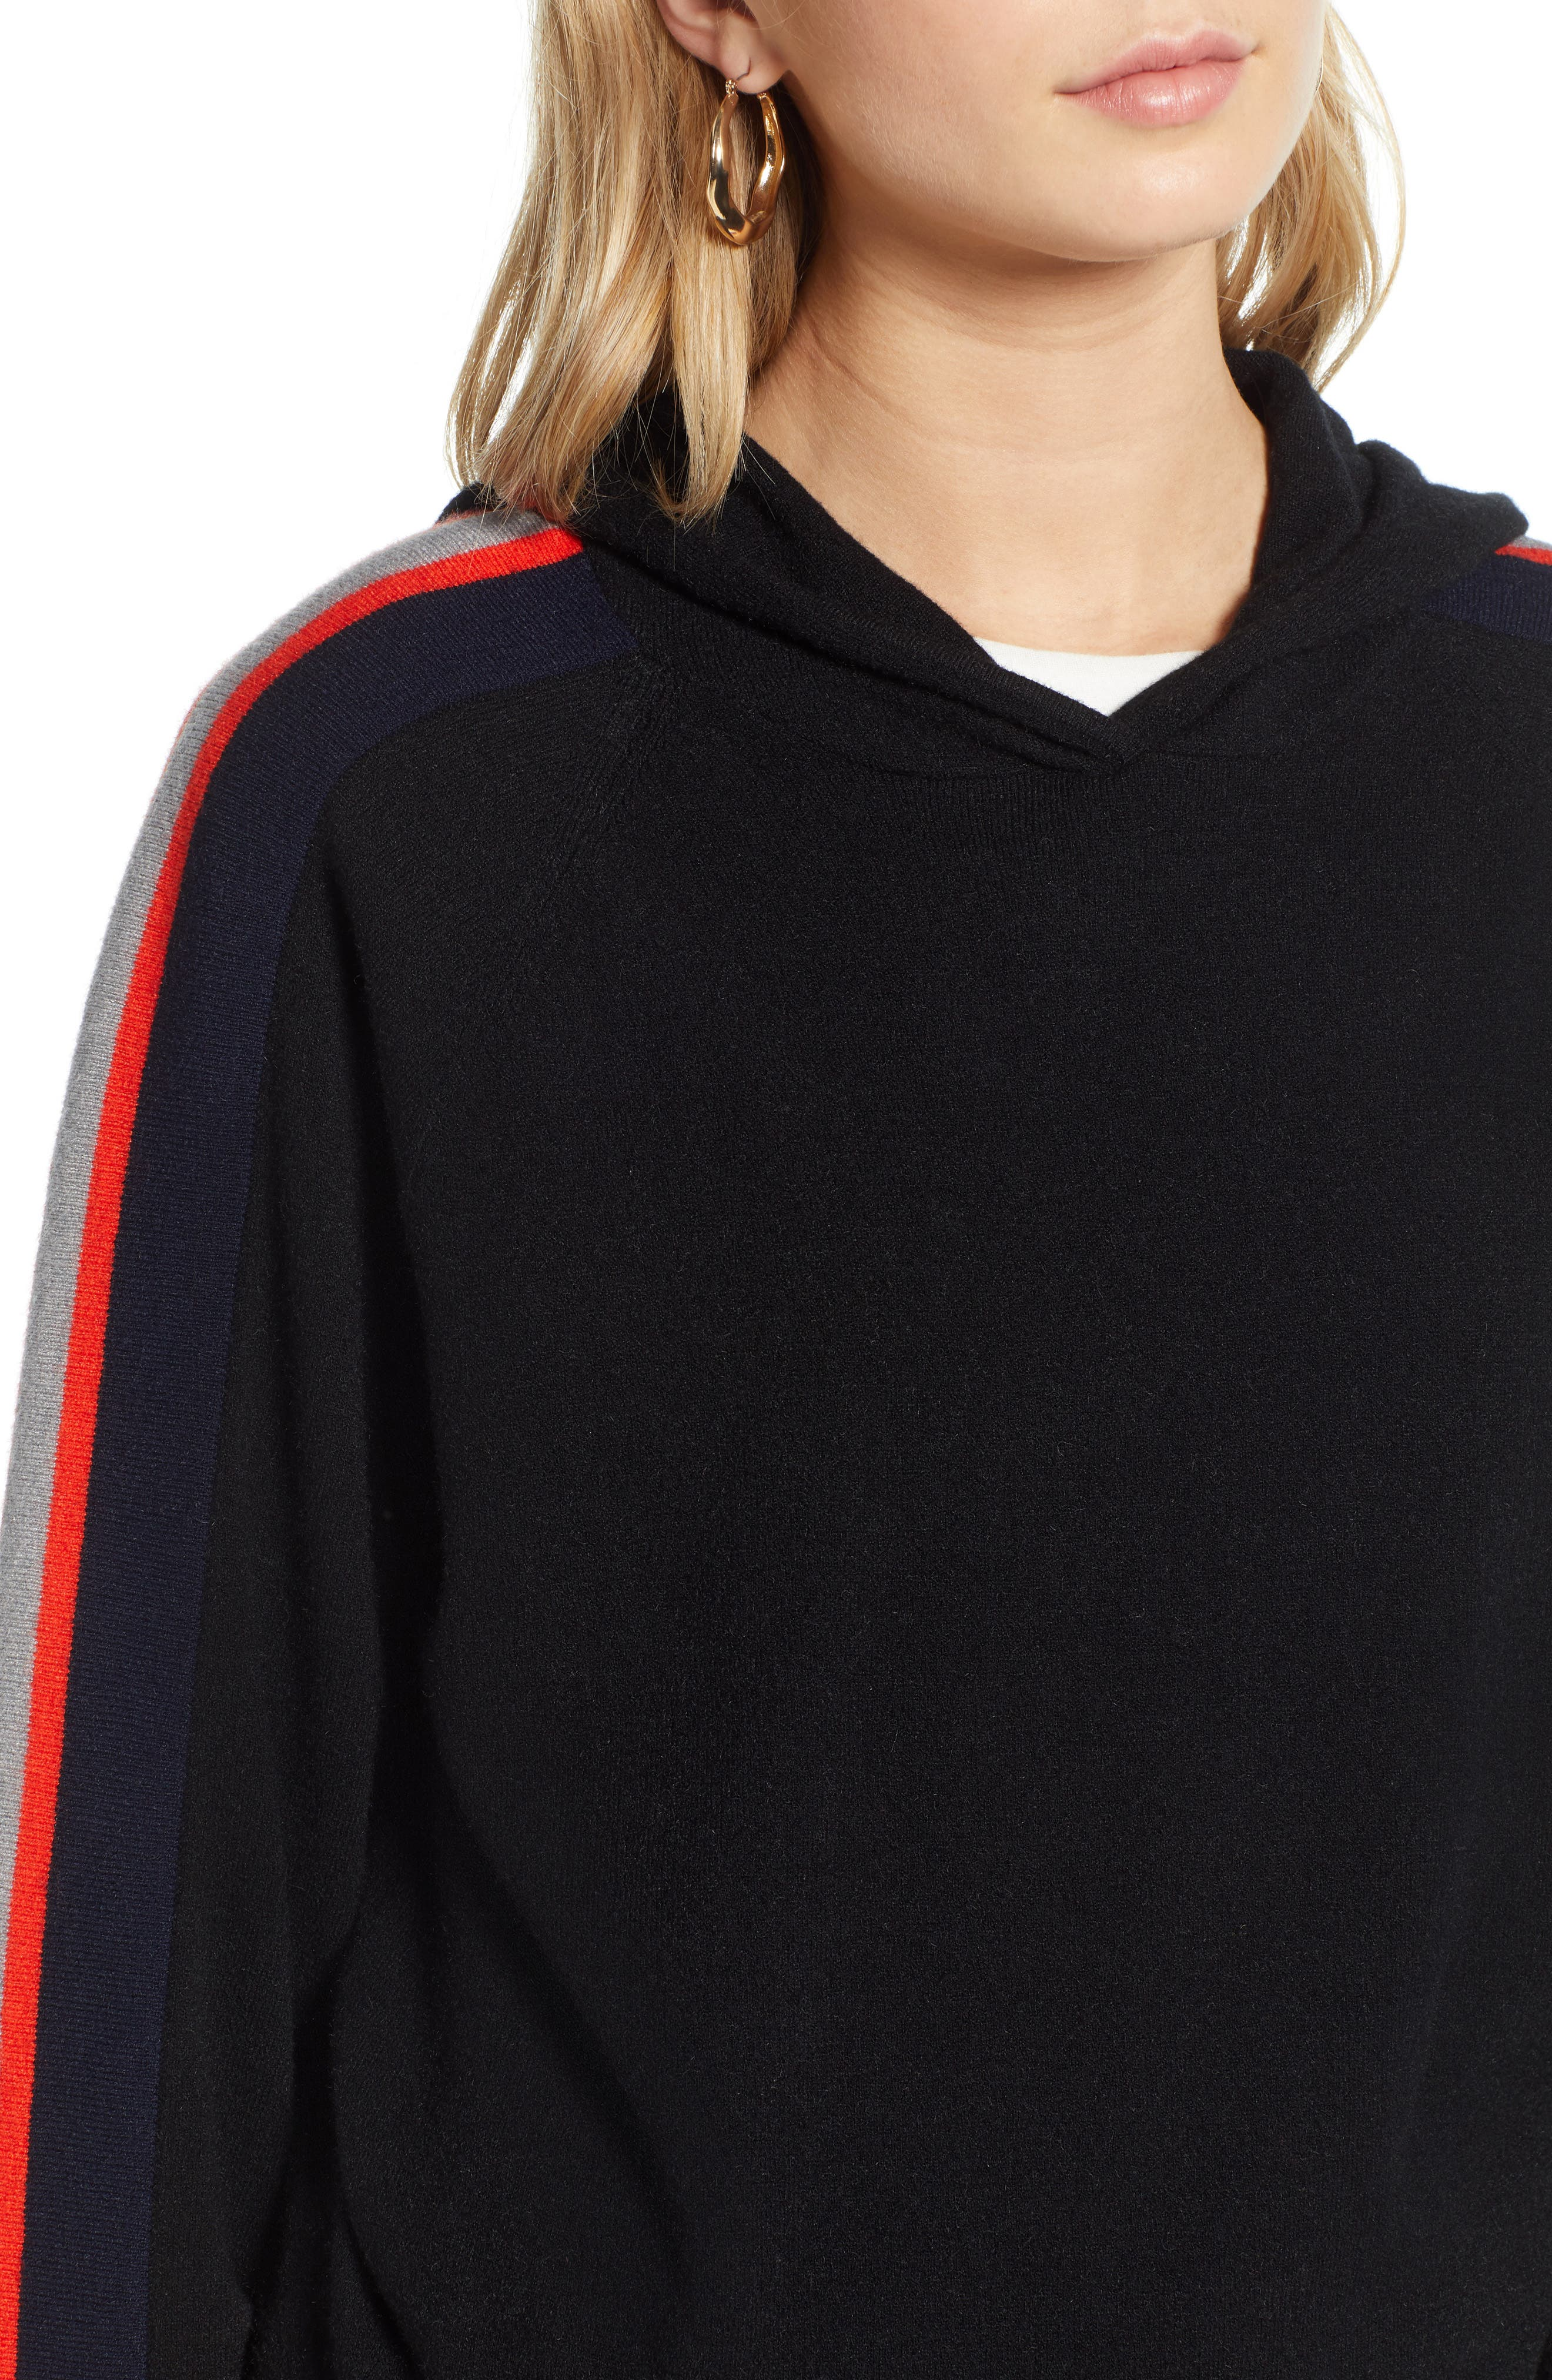 TREASURE & BOND,                             Stripe Hoodie,                             Alternate thumbnail 4, color,                             BLACK/ RED FIERY COMBO